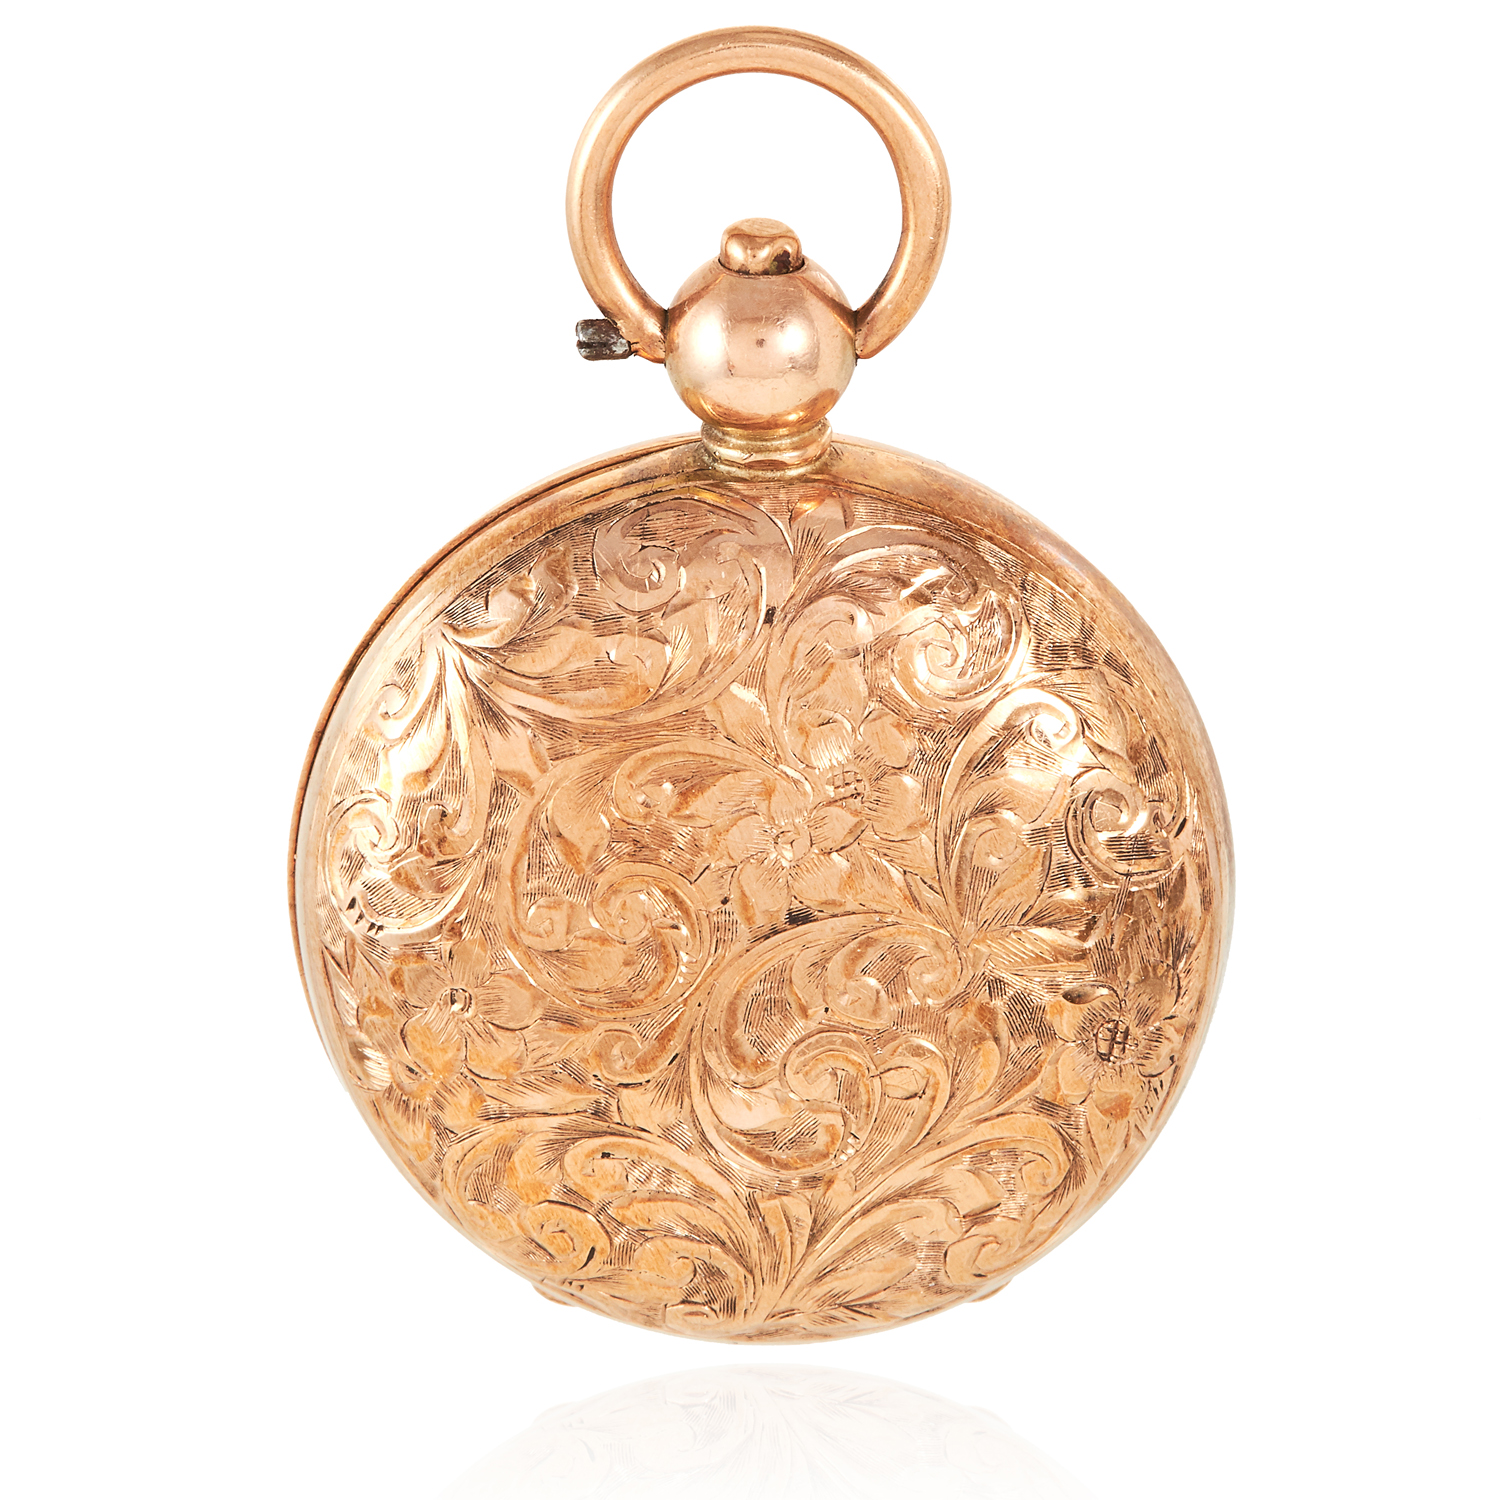 AN ANTIQUE 9 CARAT GOLD SOVEREIGN HOLDER, EARLY 20TH CENTURY circular form, hinged lid with engraved - Image 2 of 2